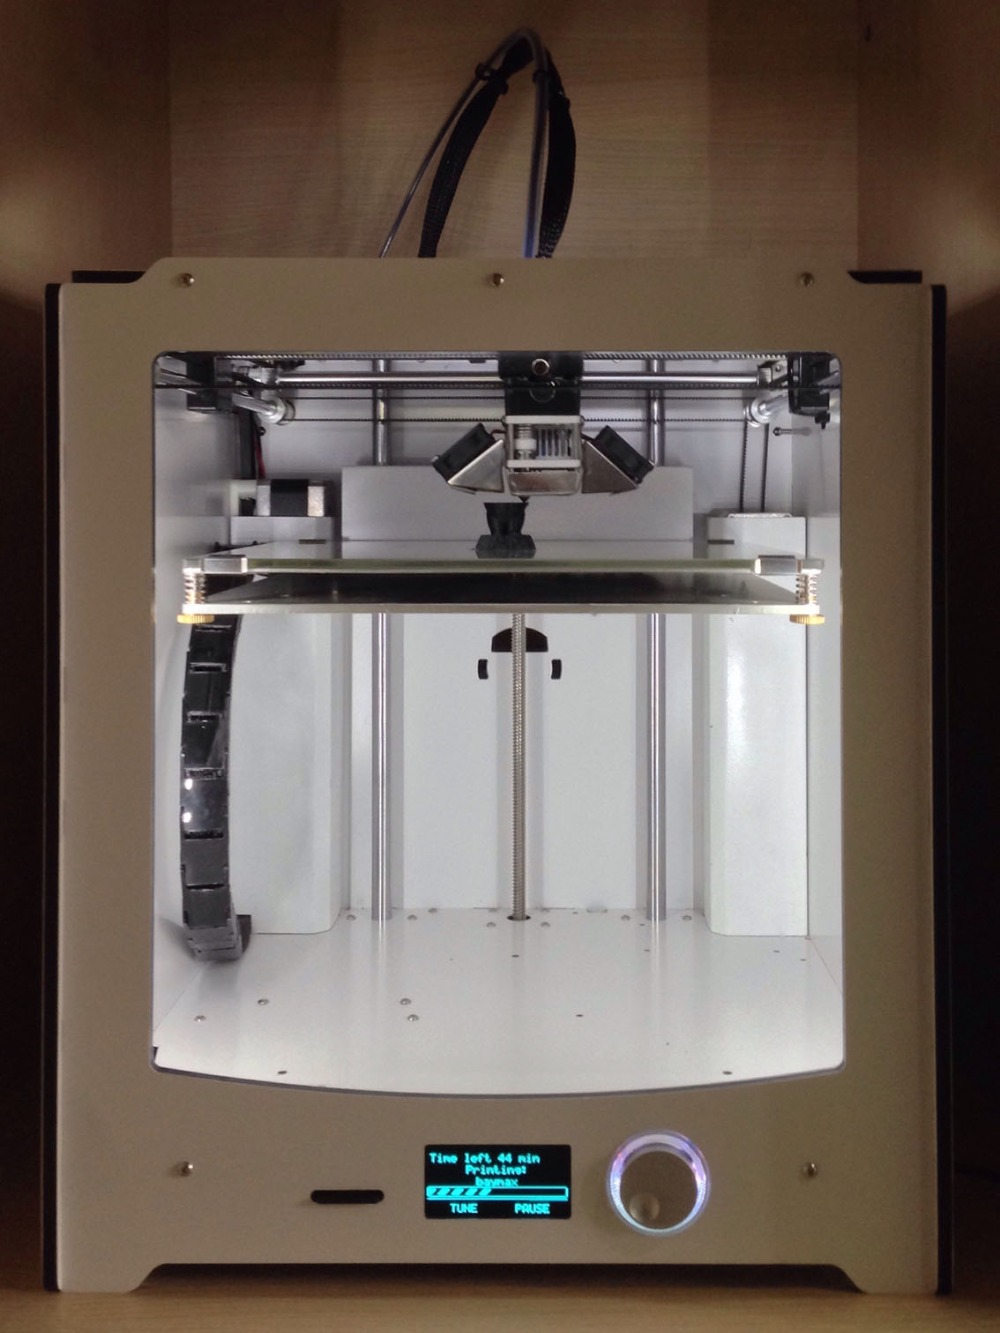 DIY UM2 Ultimaker 2 3D printer DIY full kit/set(not assemble) Ultimaker2 singile nozzles 3D printer